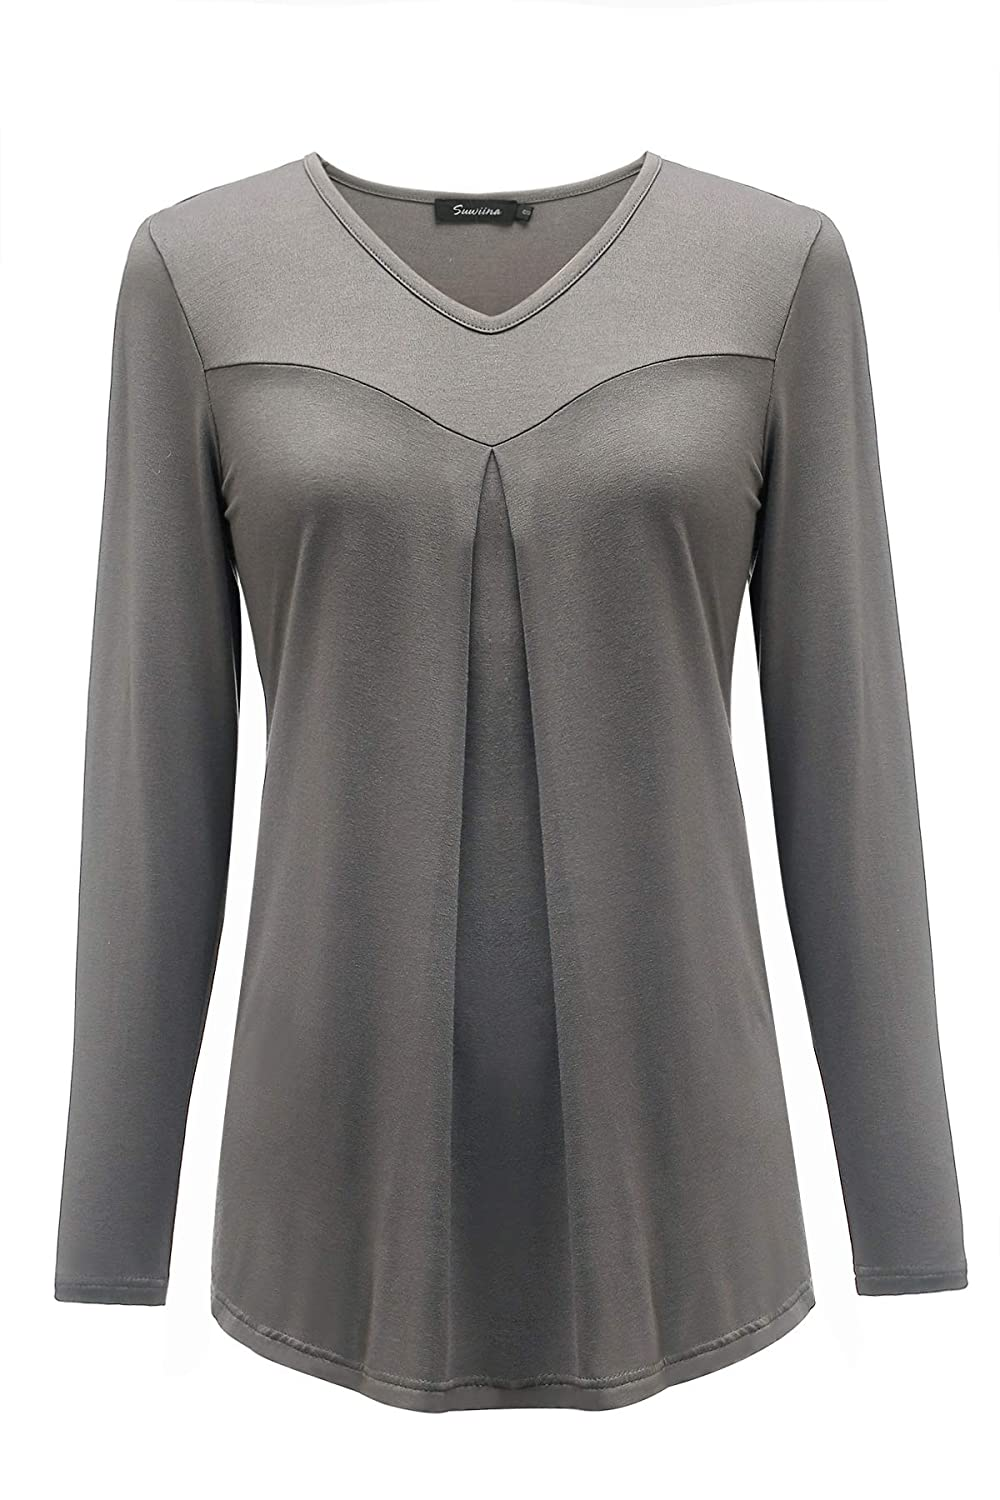 Dark Grey SUWIINA Women's Long Sleeve VNeck Pleated Long Top